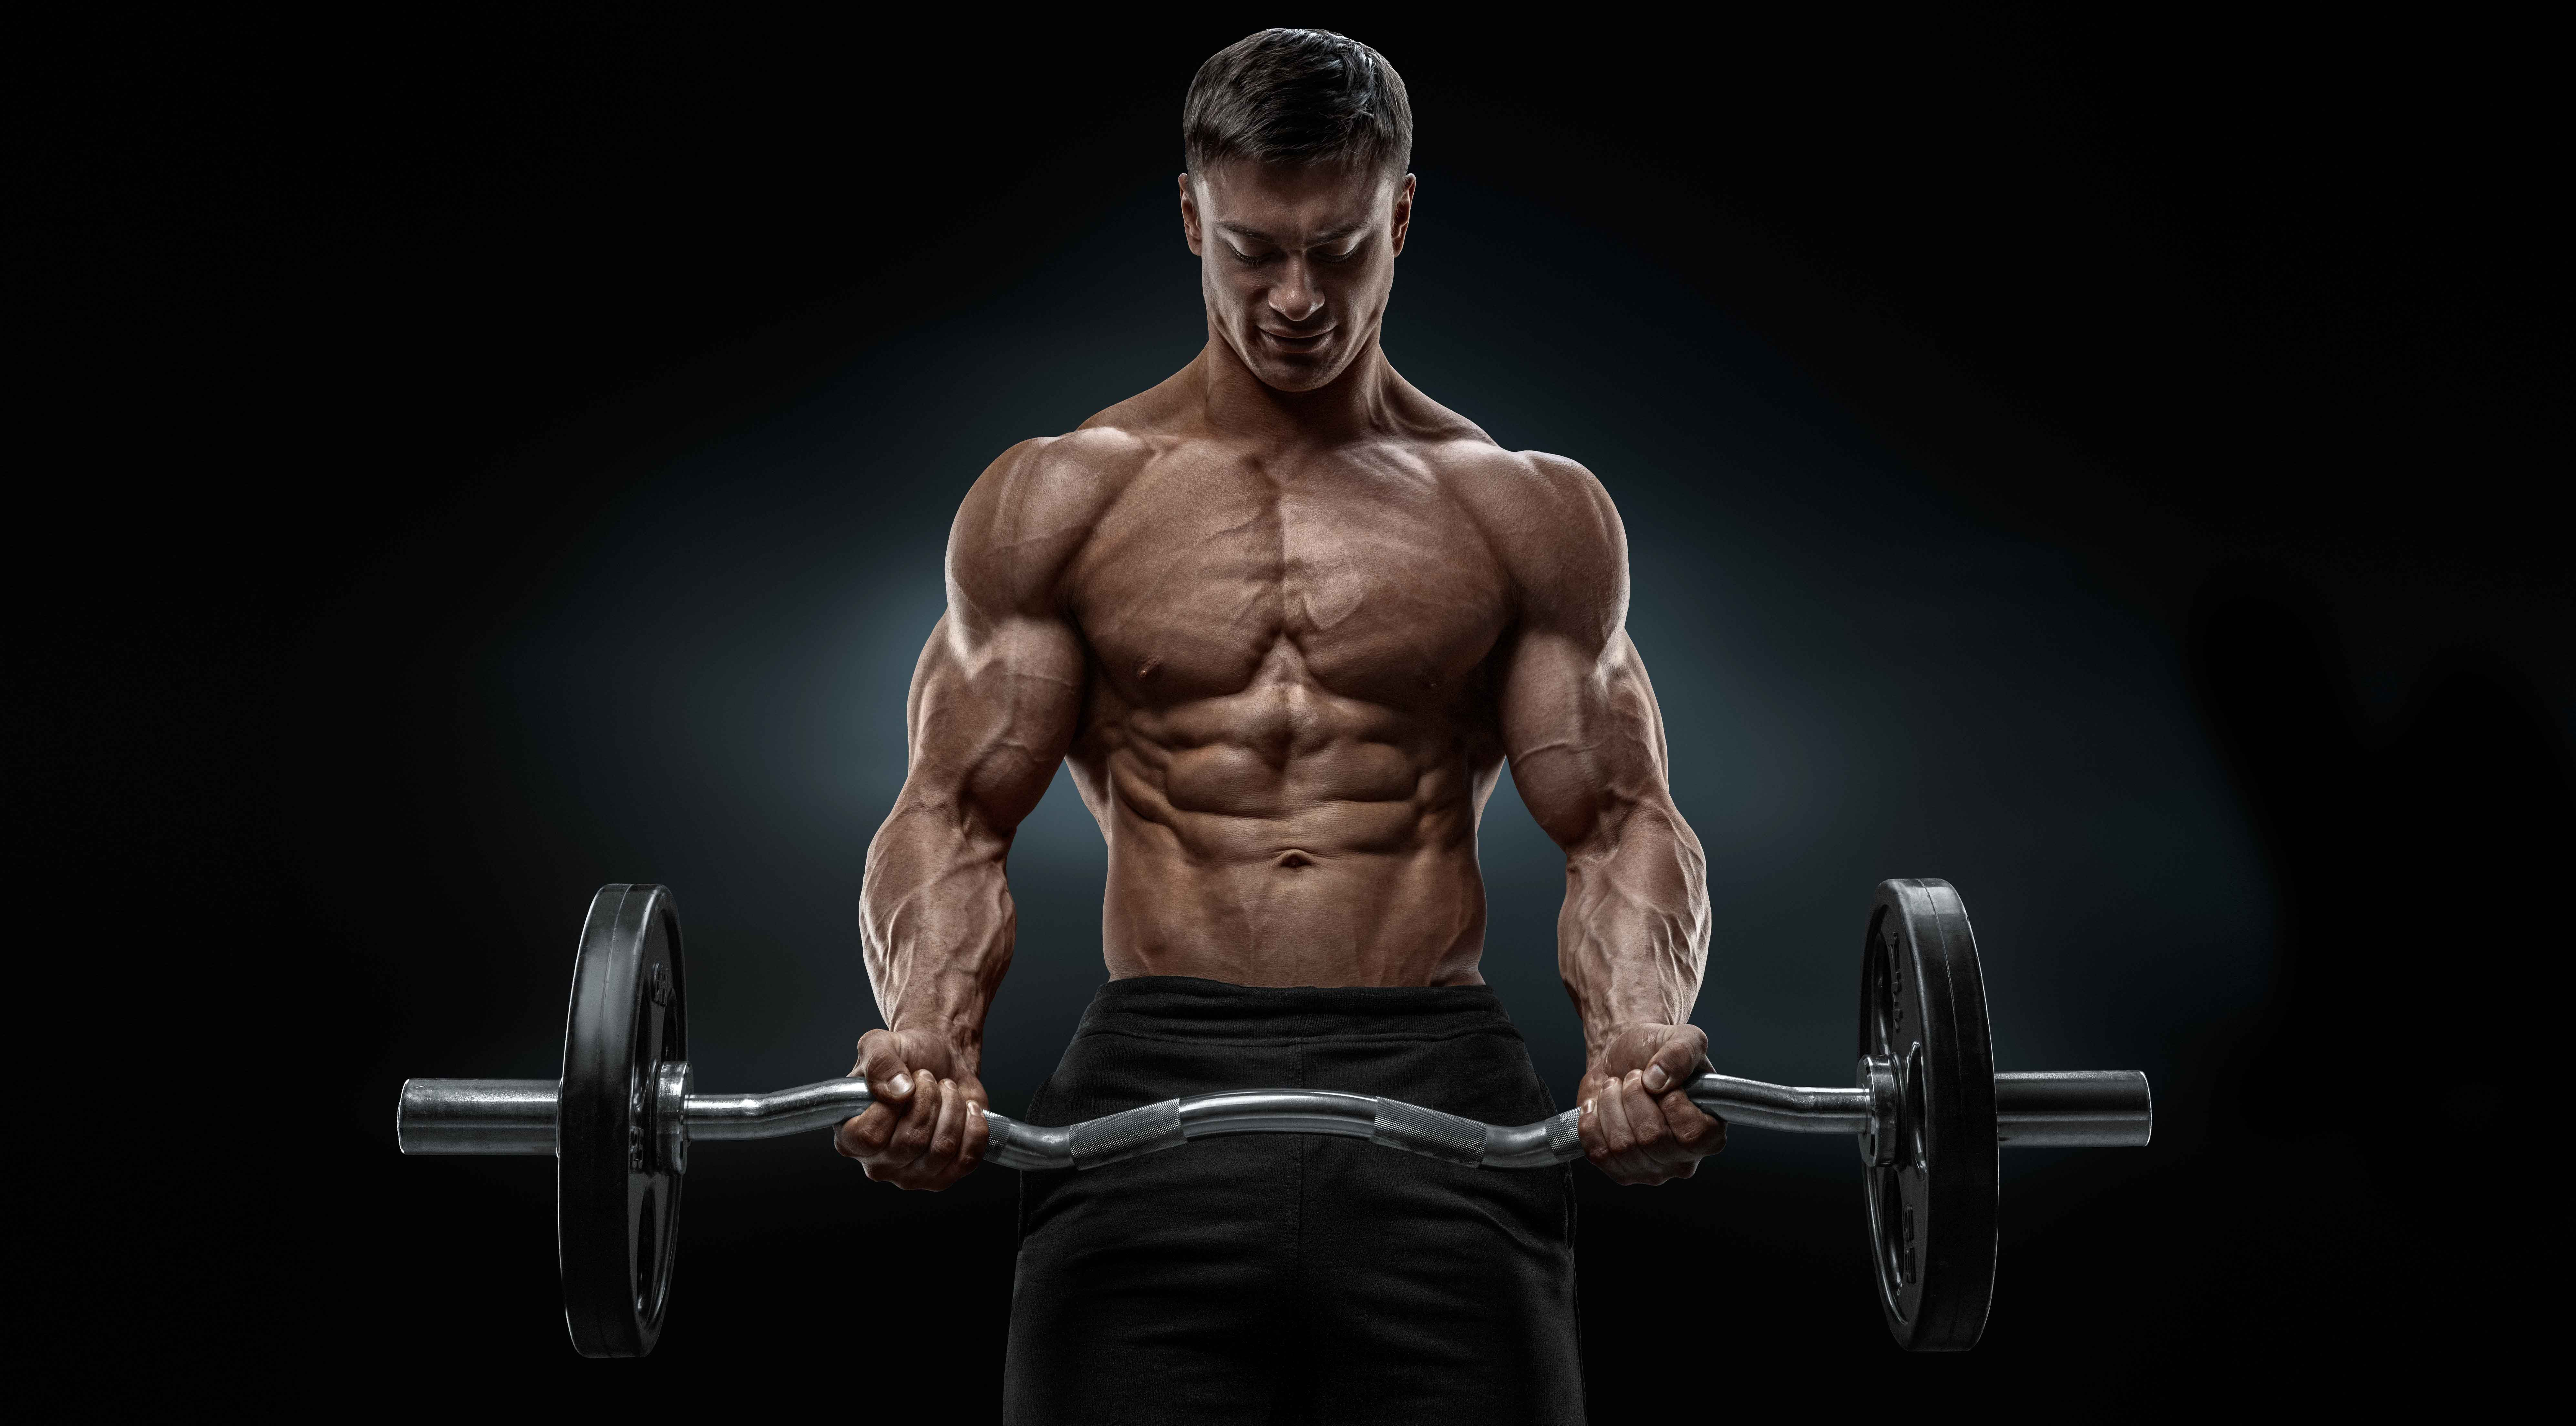 3 Week Training To Keep A Shredded Physique